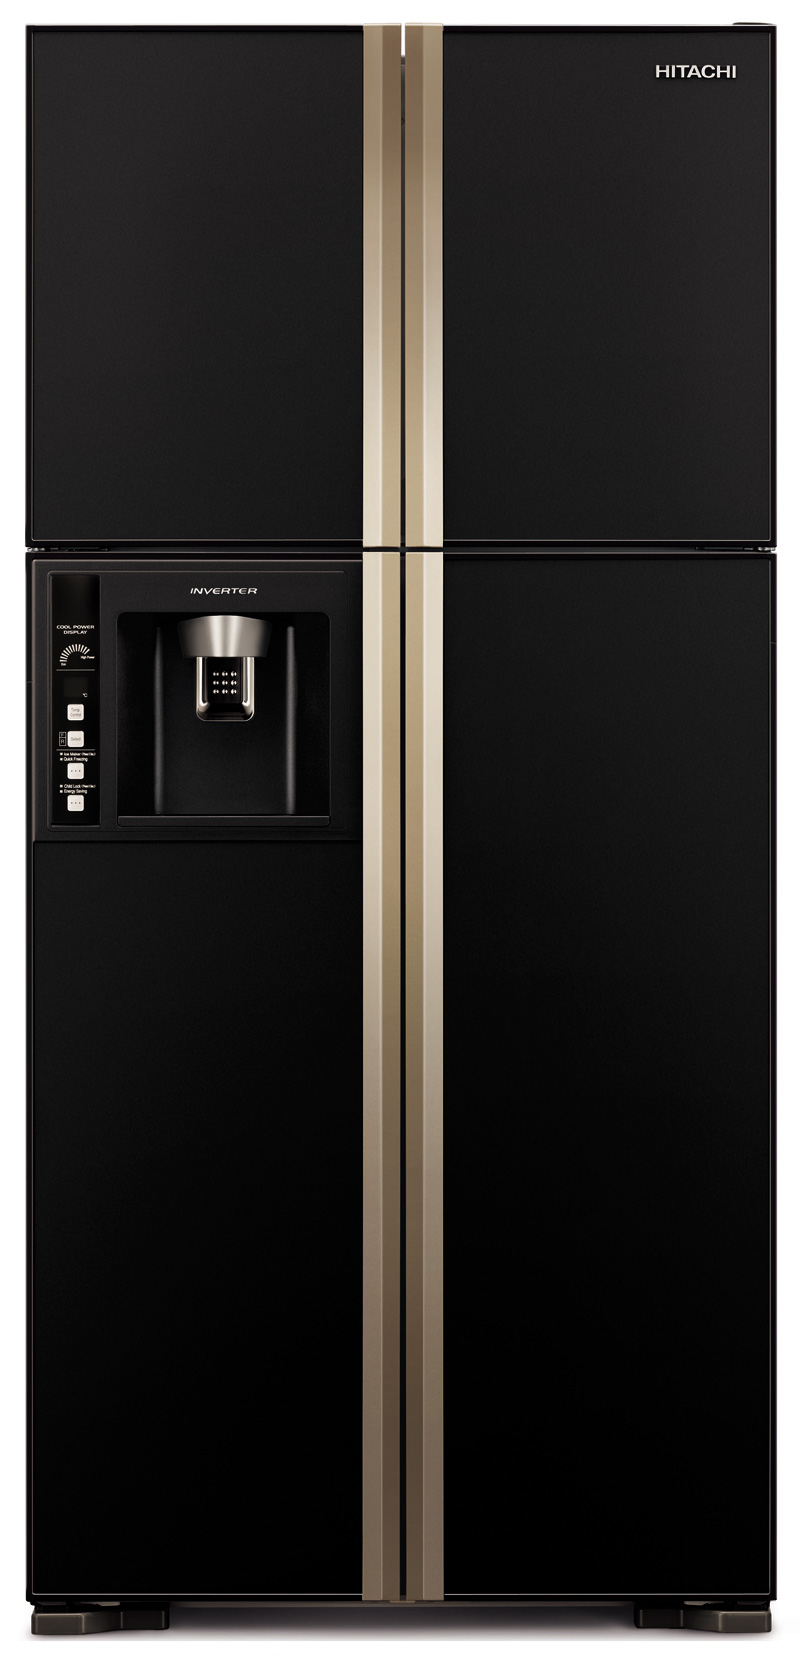 Hitachi Side-By-Side Refrigerator  H-RW720FPG1XGBK